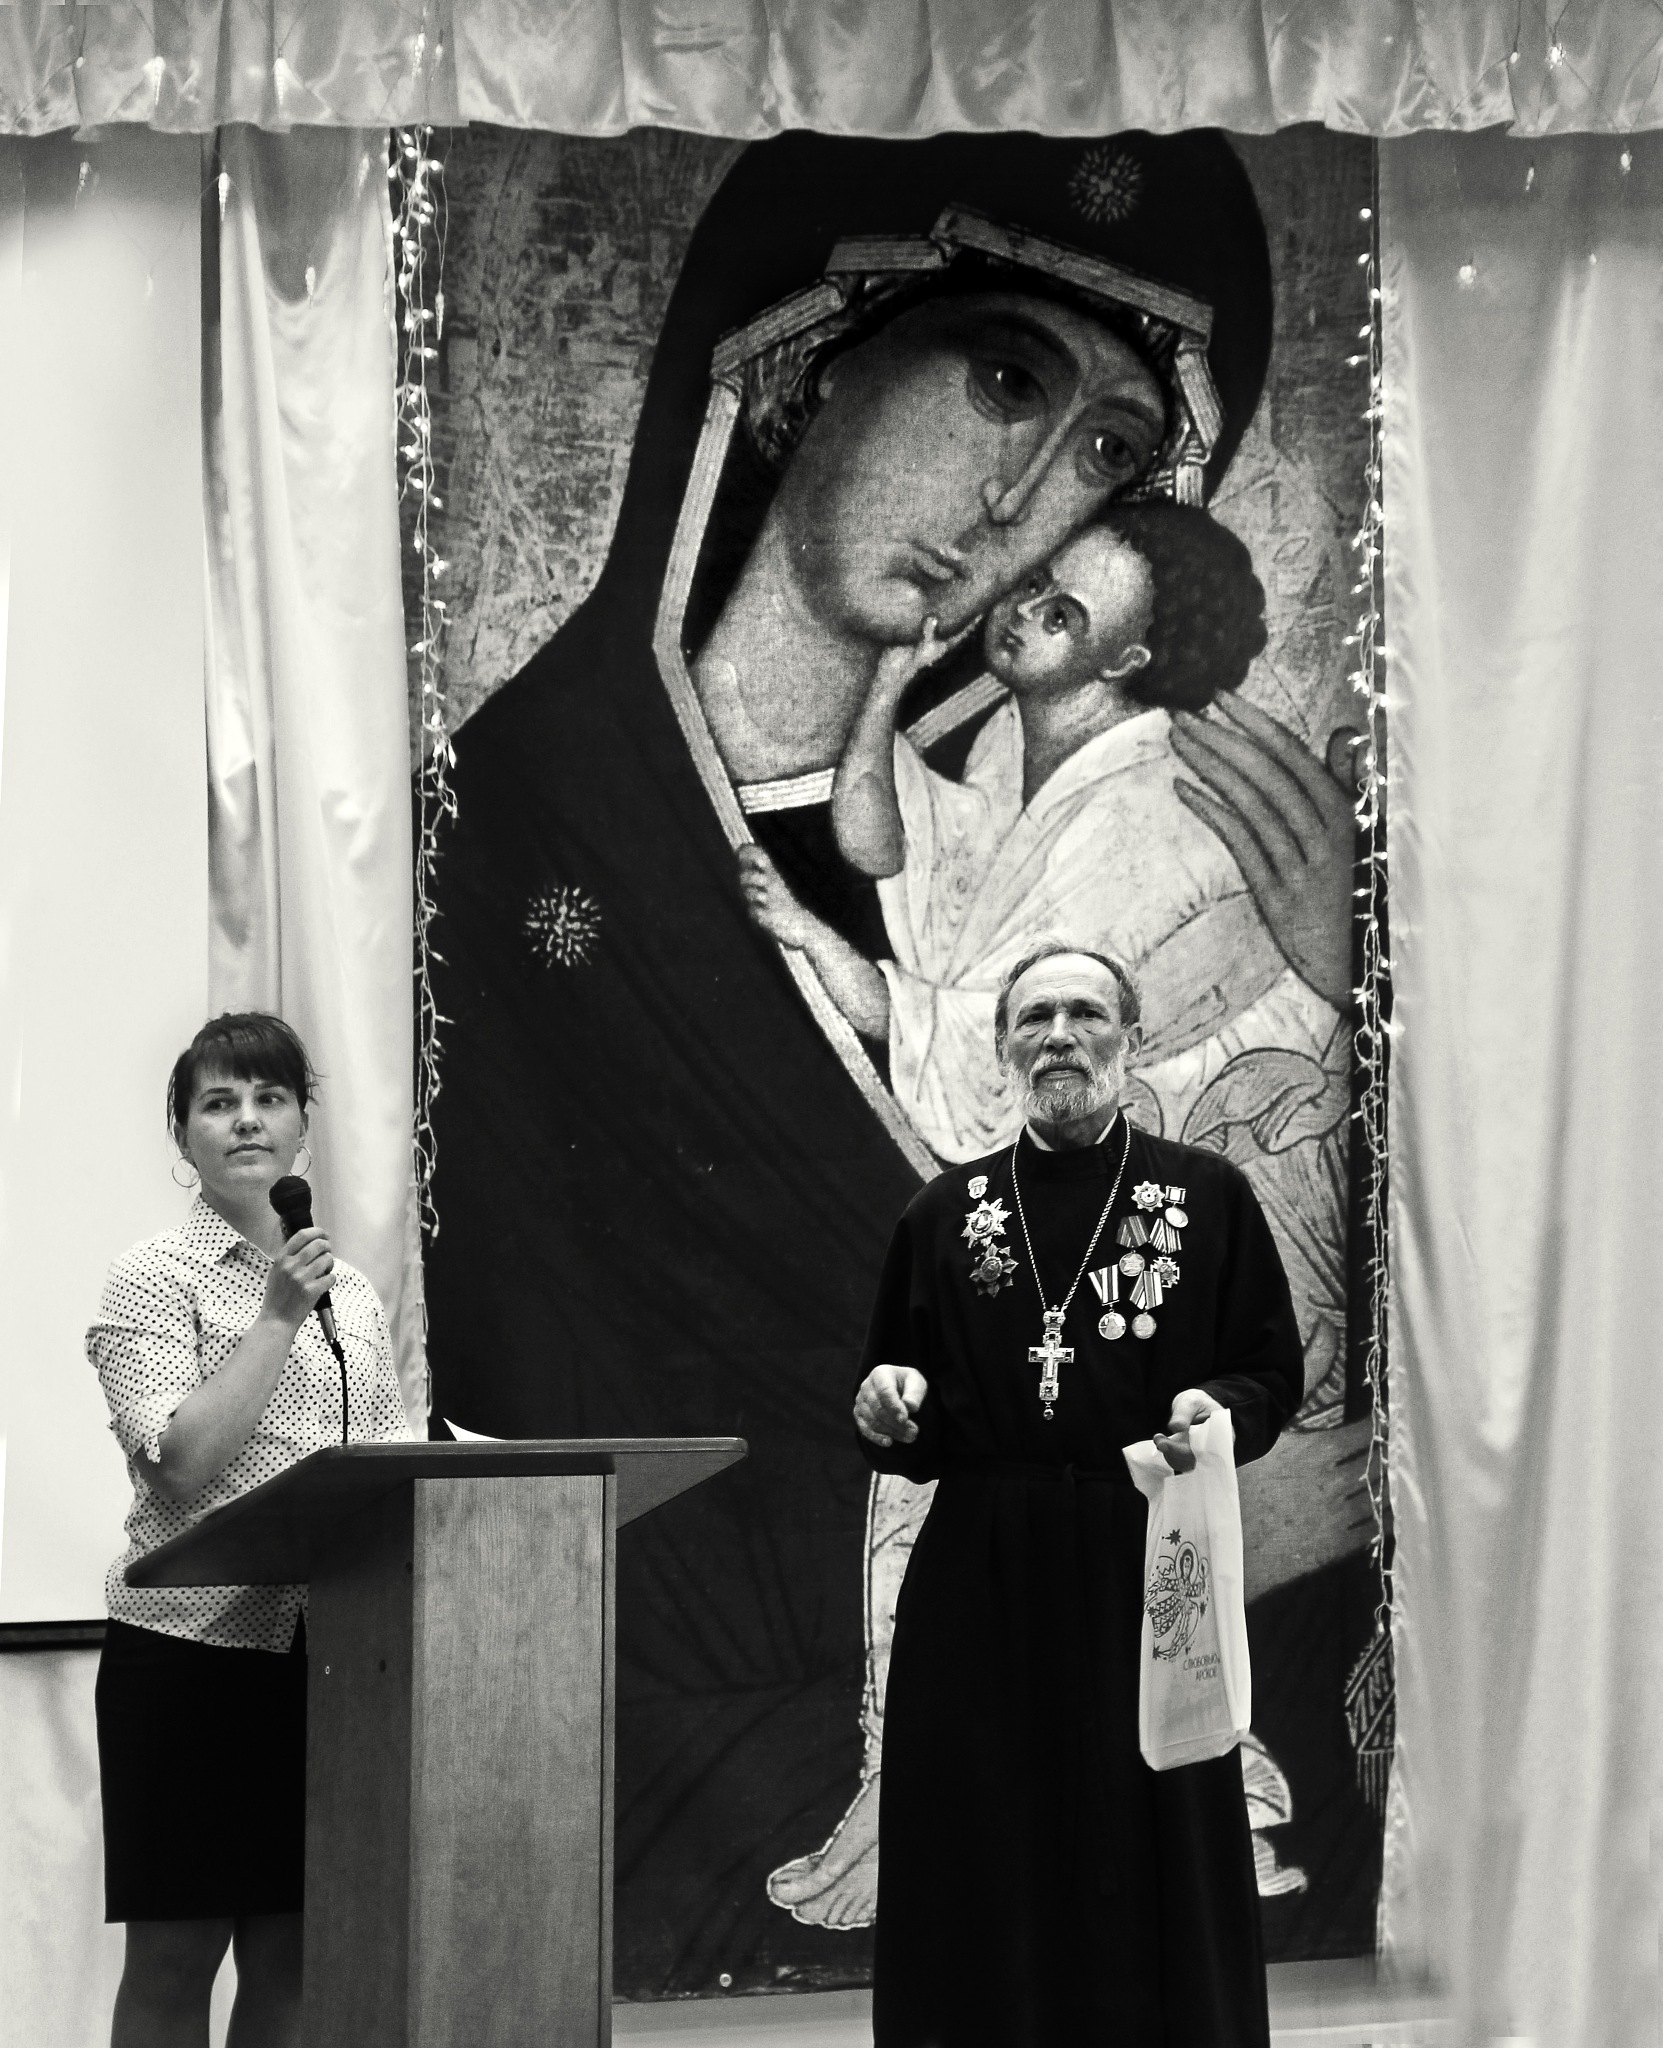 Awarding the winners of the contest of readers of poetry by Сергей Юрьев